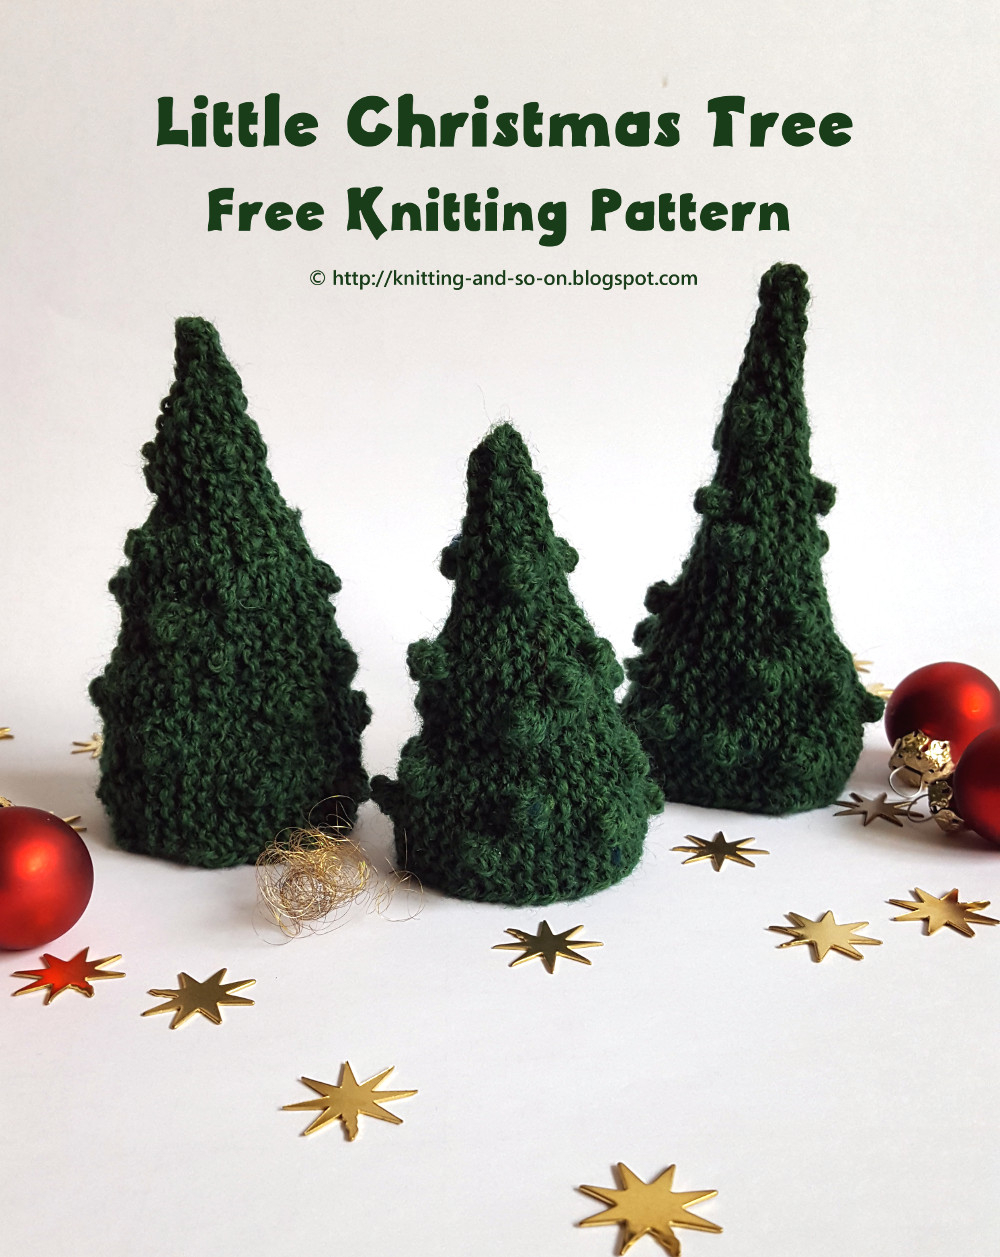 Free Knitted Christmas Tree Decorations Patterns Knitting And So On O Christmas Tree